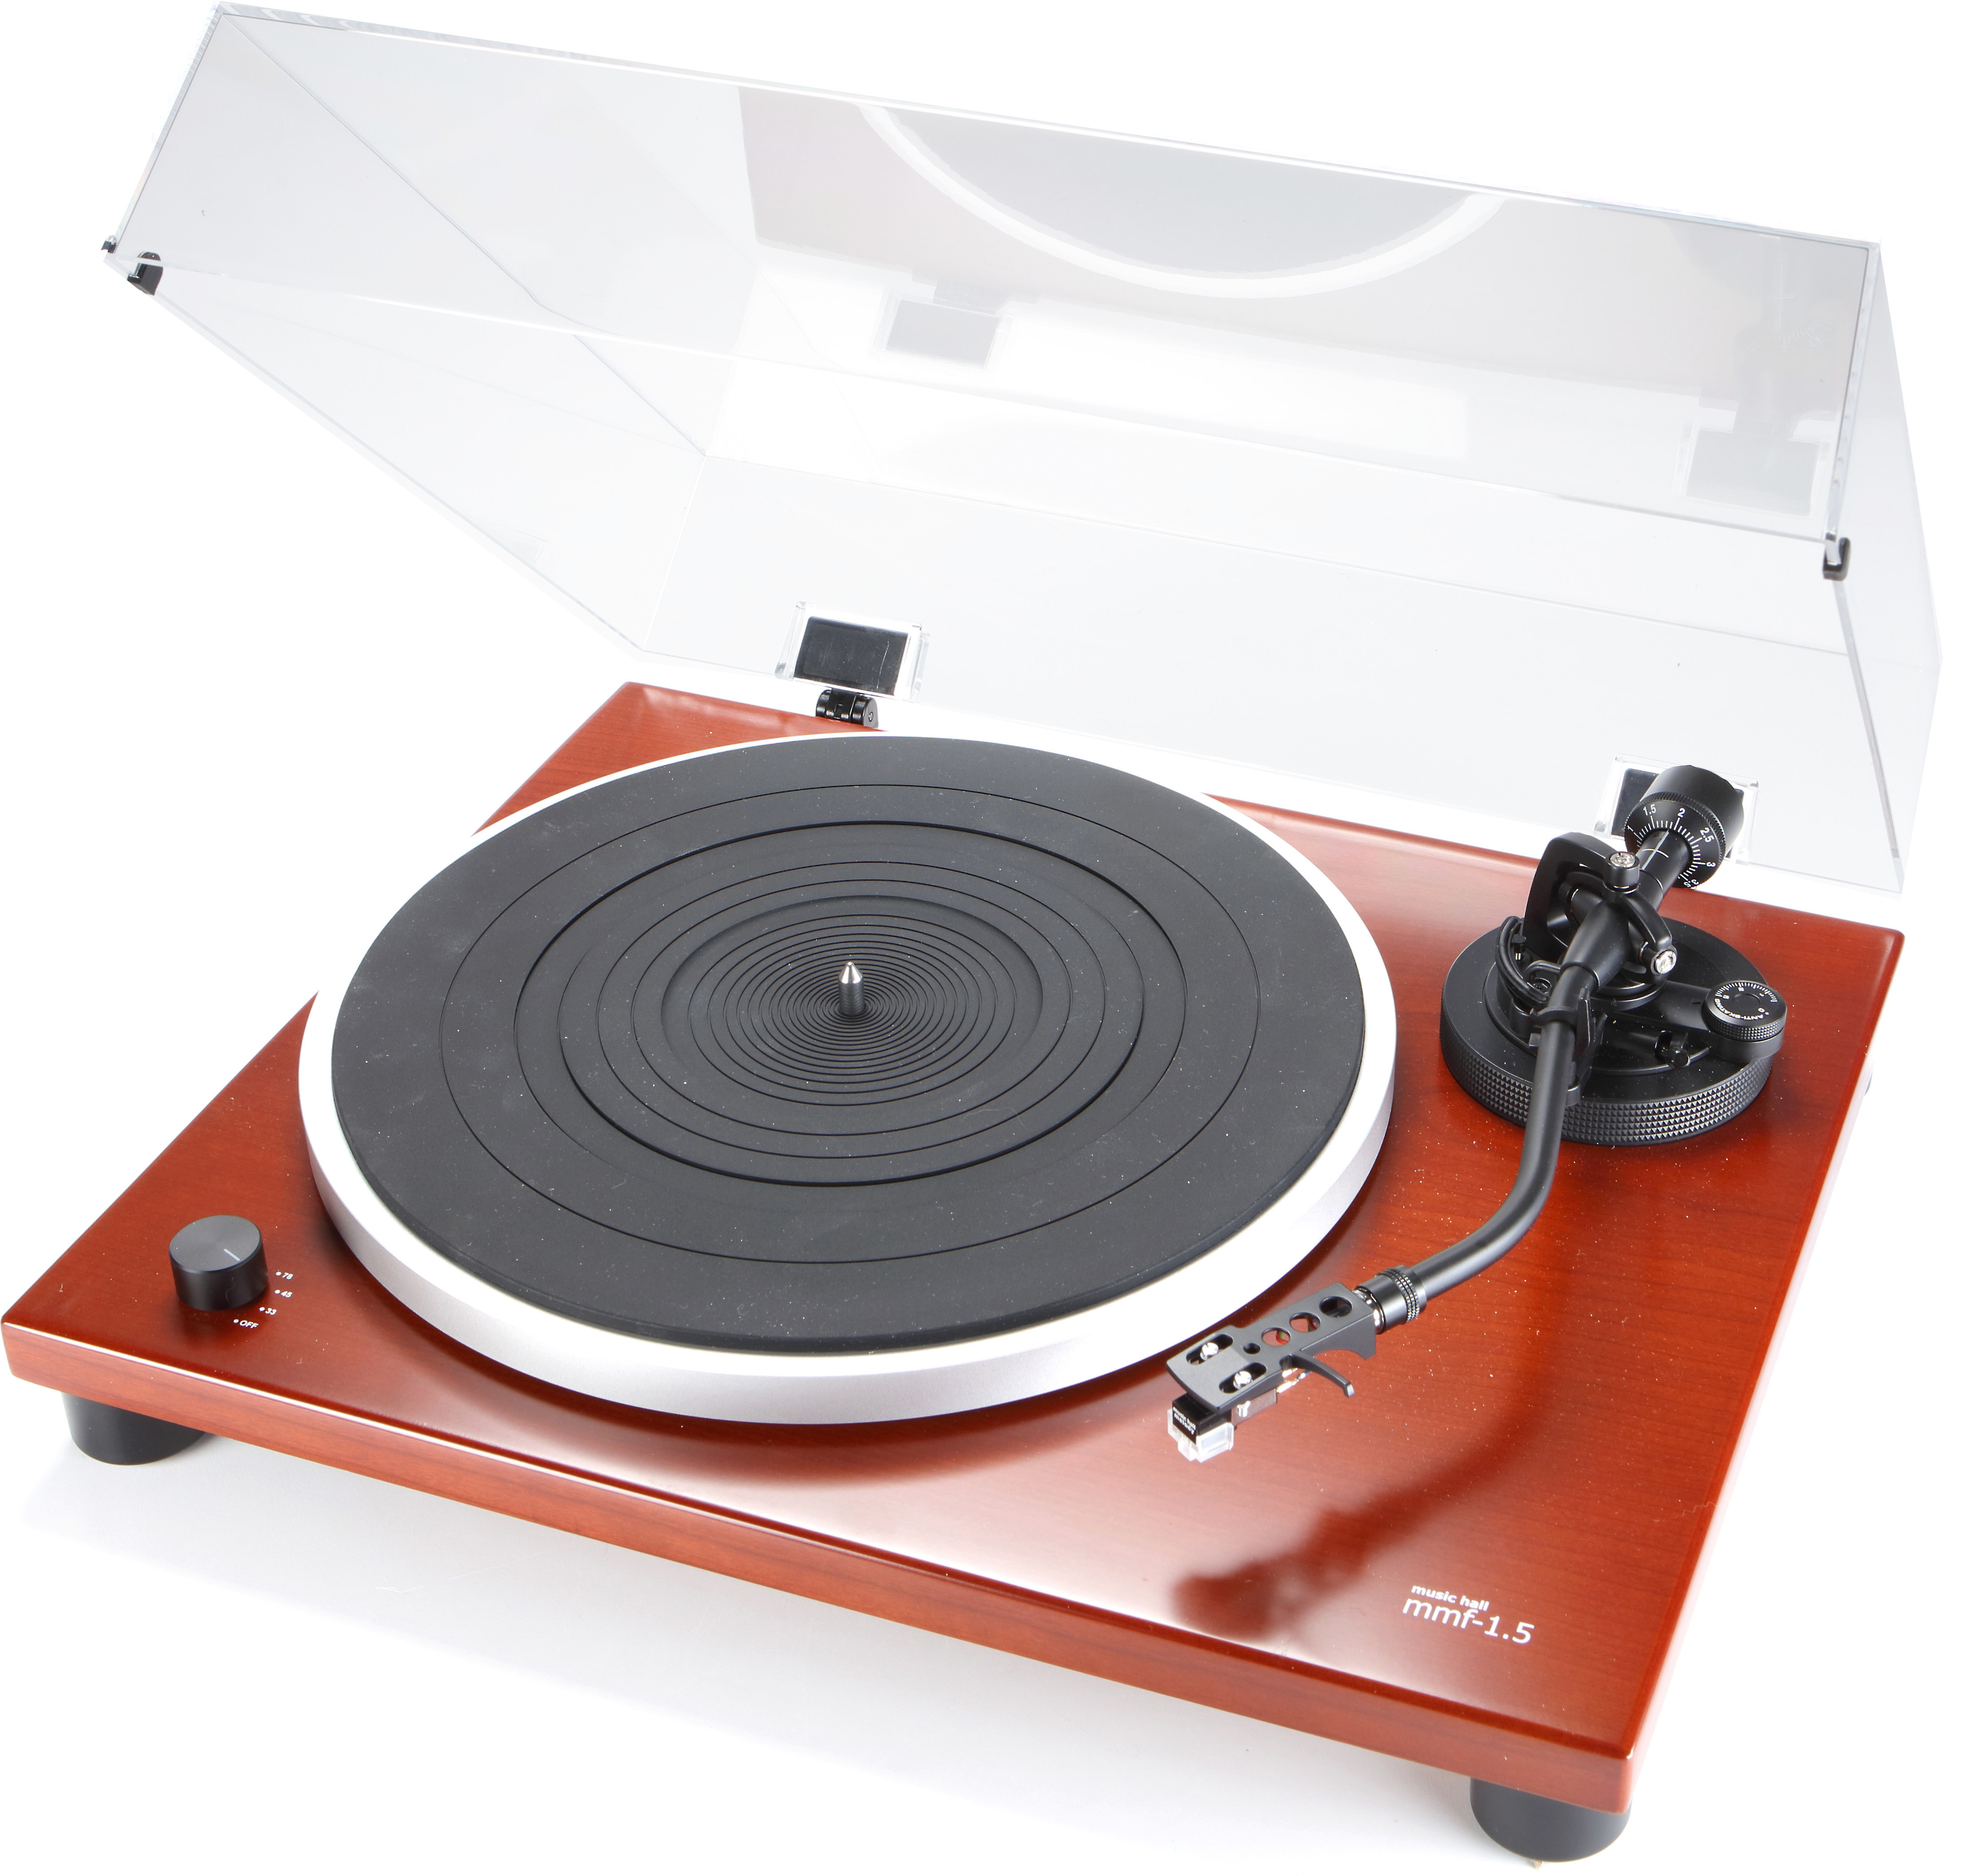 Music Hall MMF 1.5 Manual belt drive turntable with built in phono preamp at Crutchfield